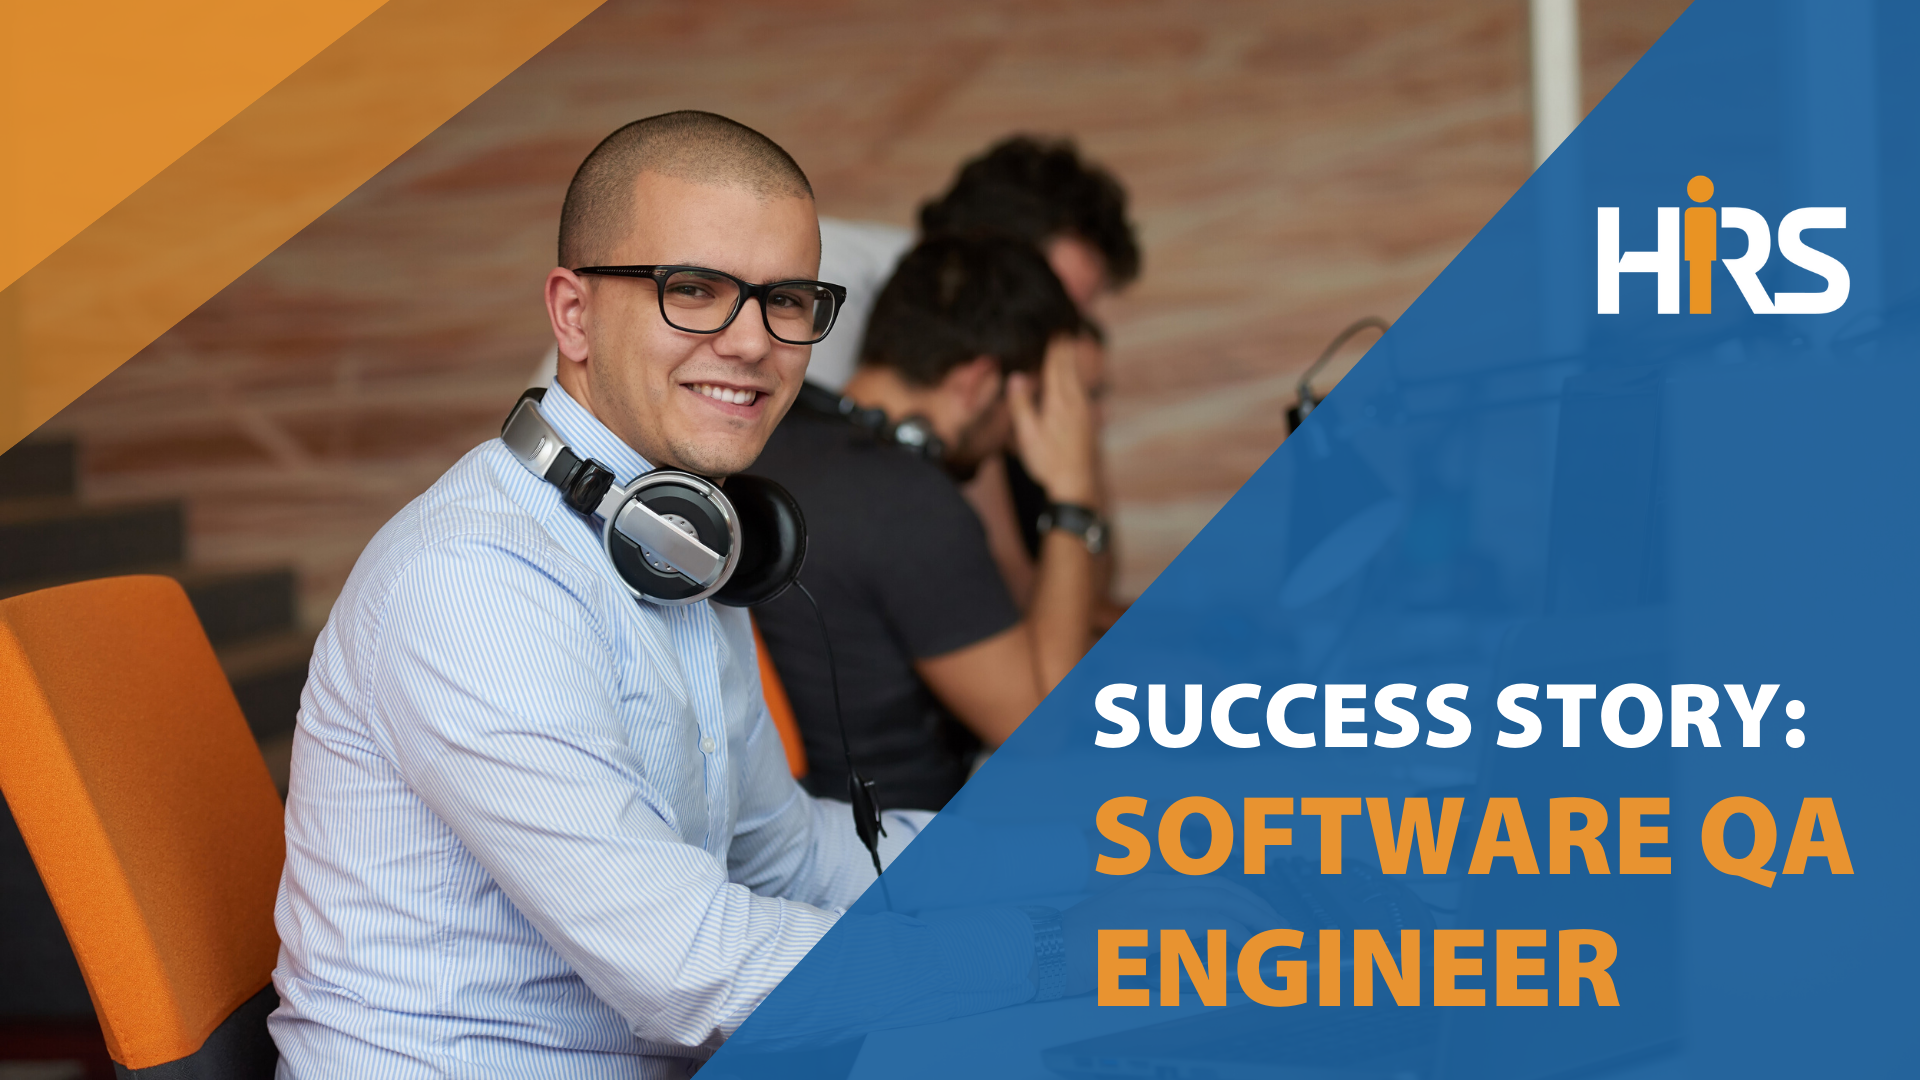 Success story: Software QA Engineer